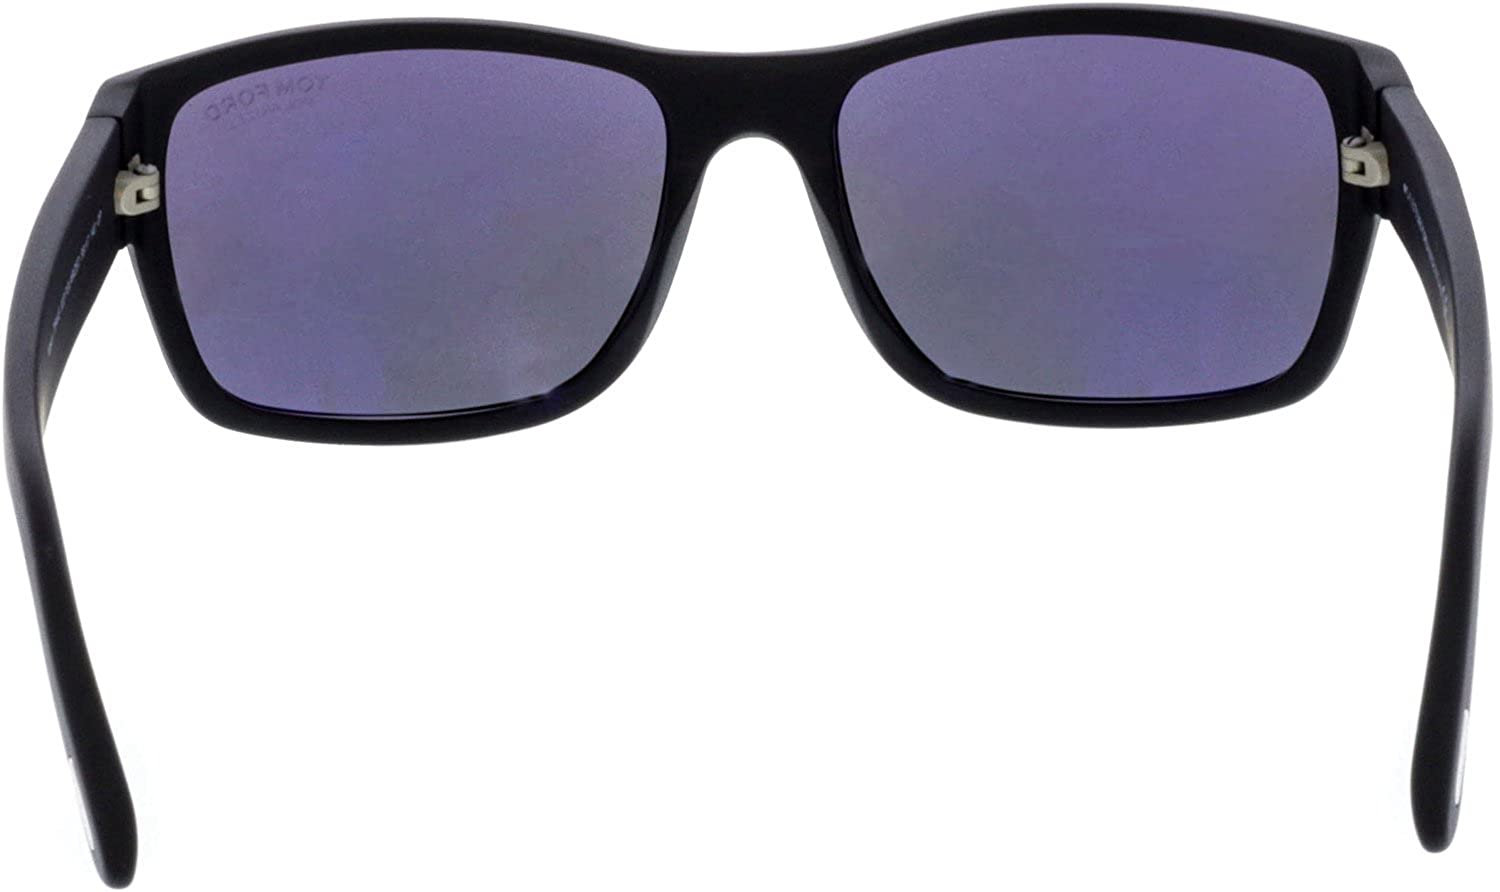 507e21053d Amazon.com  Tom Ford Men s Mason TF445 TF445 S 02D Black Fashion Sunglasses  58mm  Tom Ford  Clothing